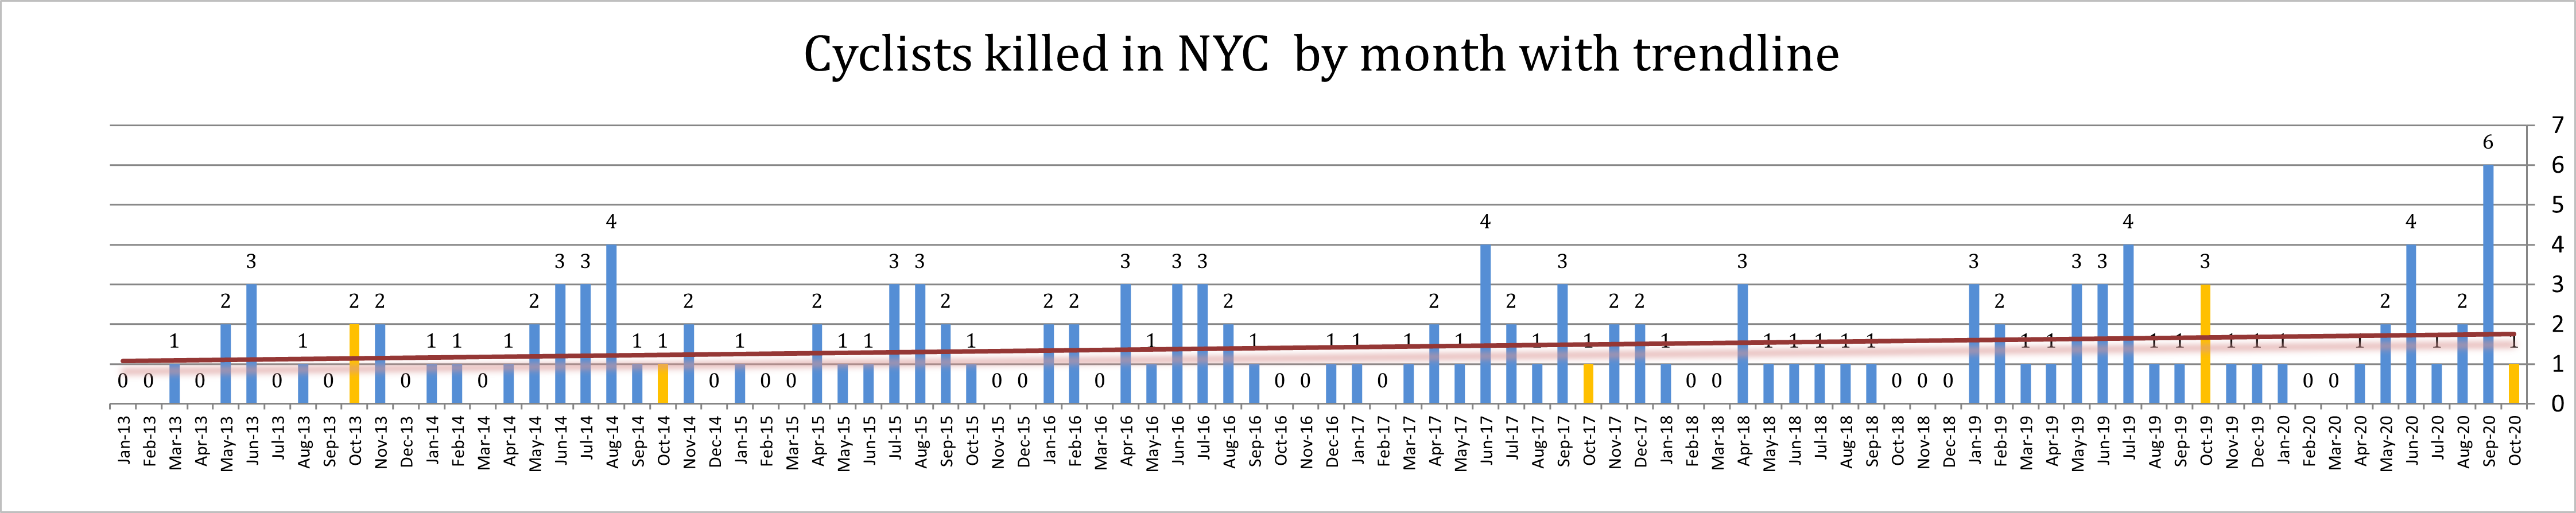 bike accident deaths October 2020 nyc